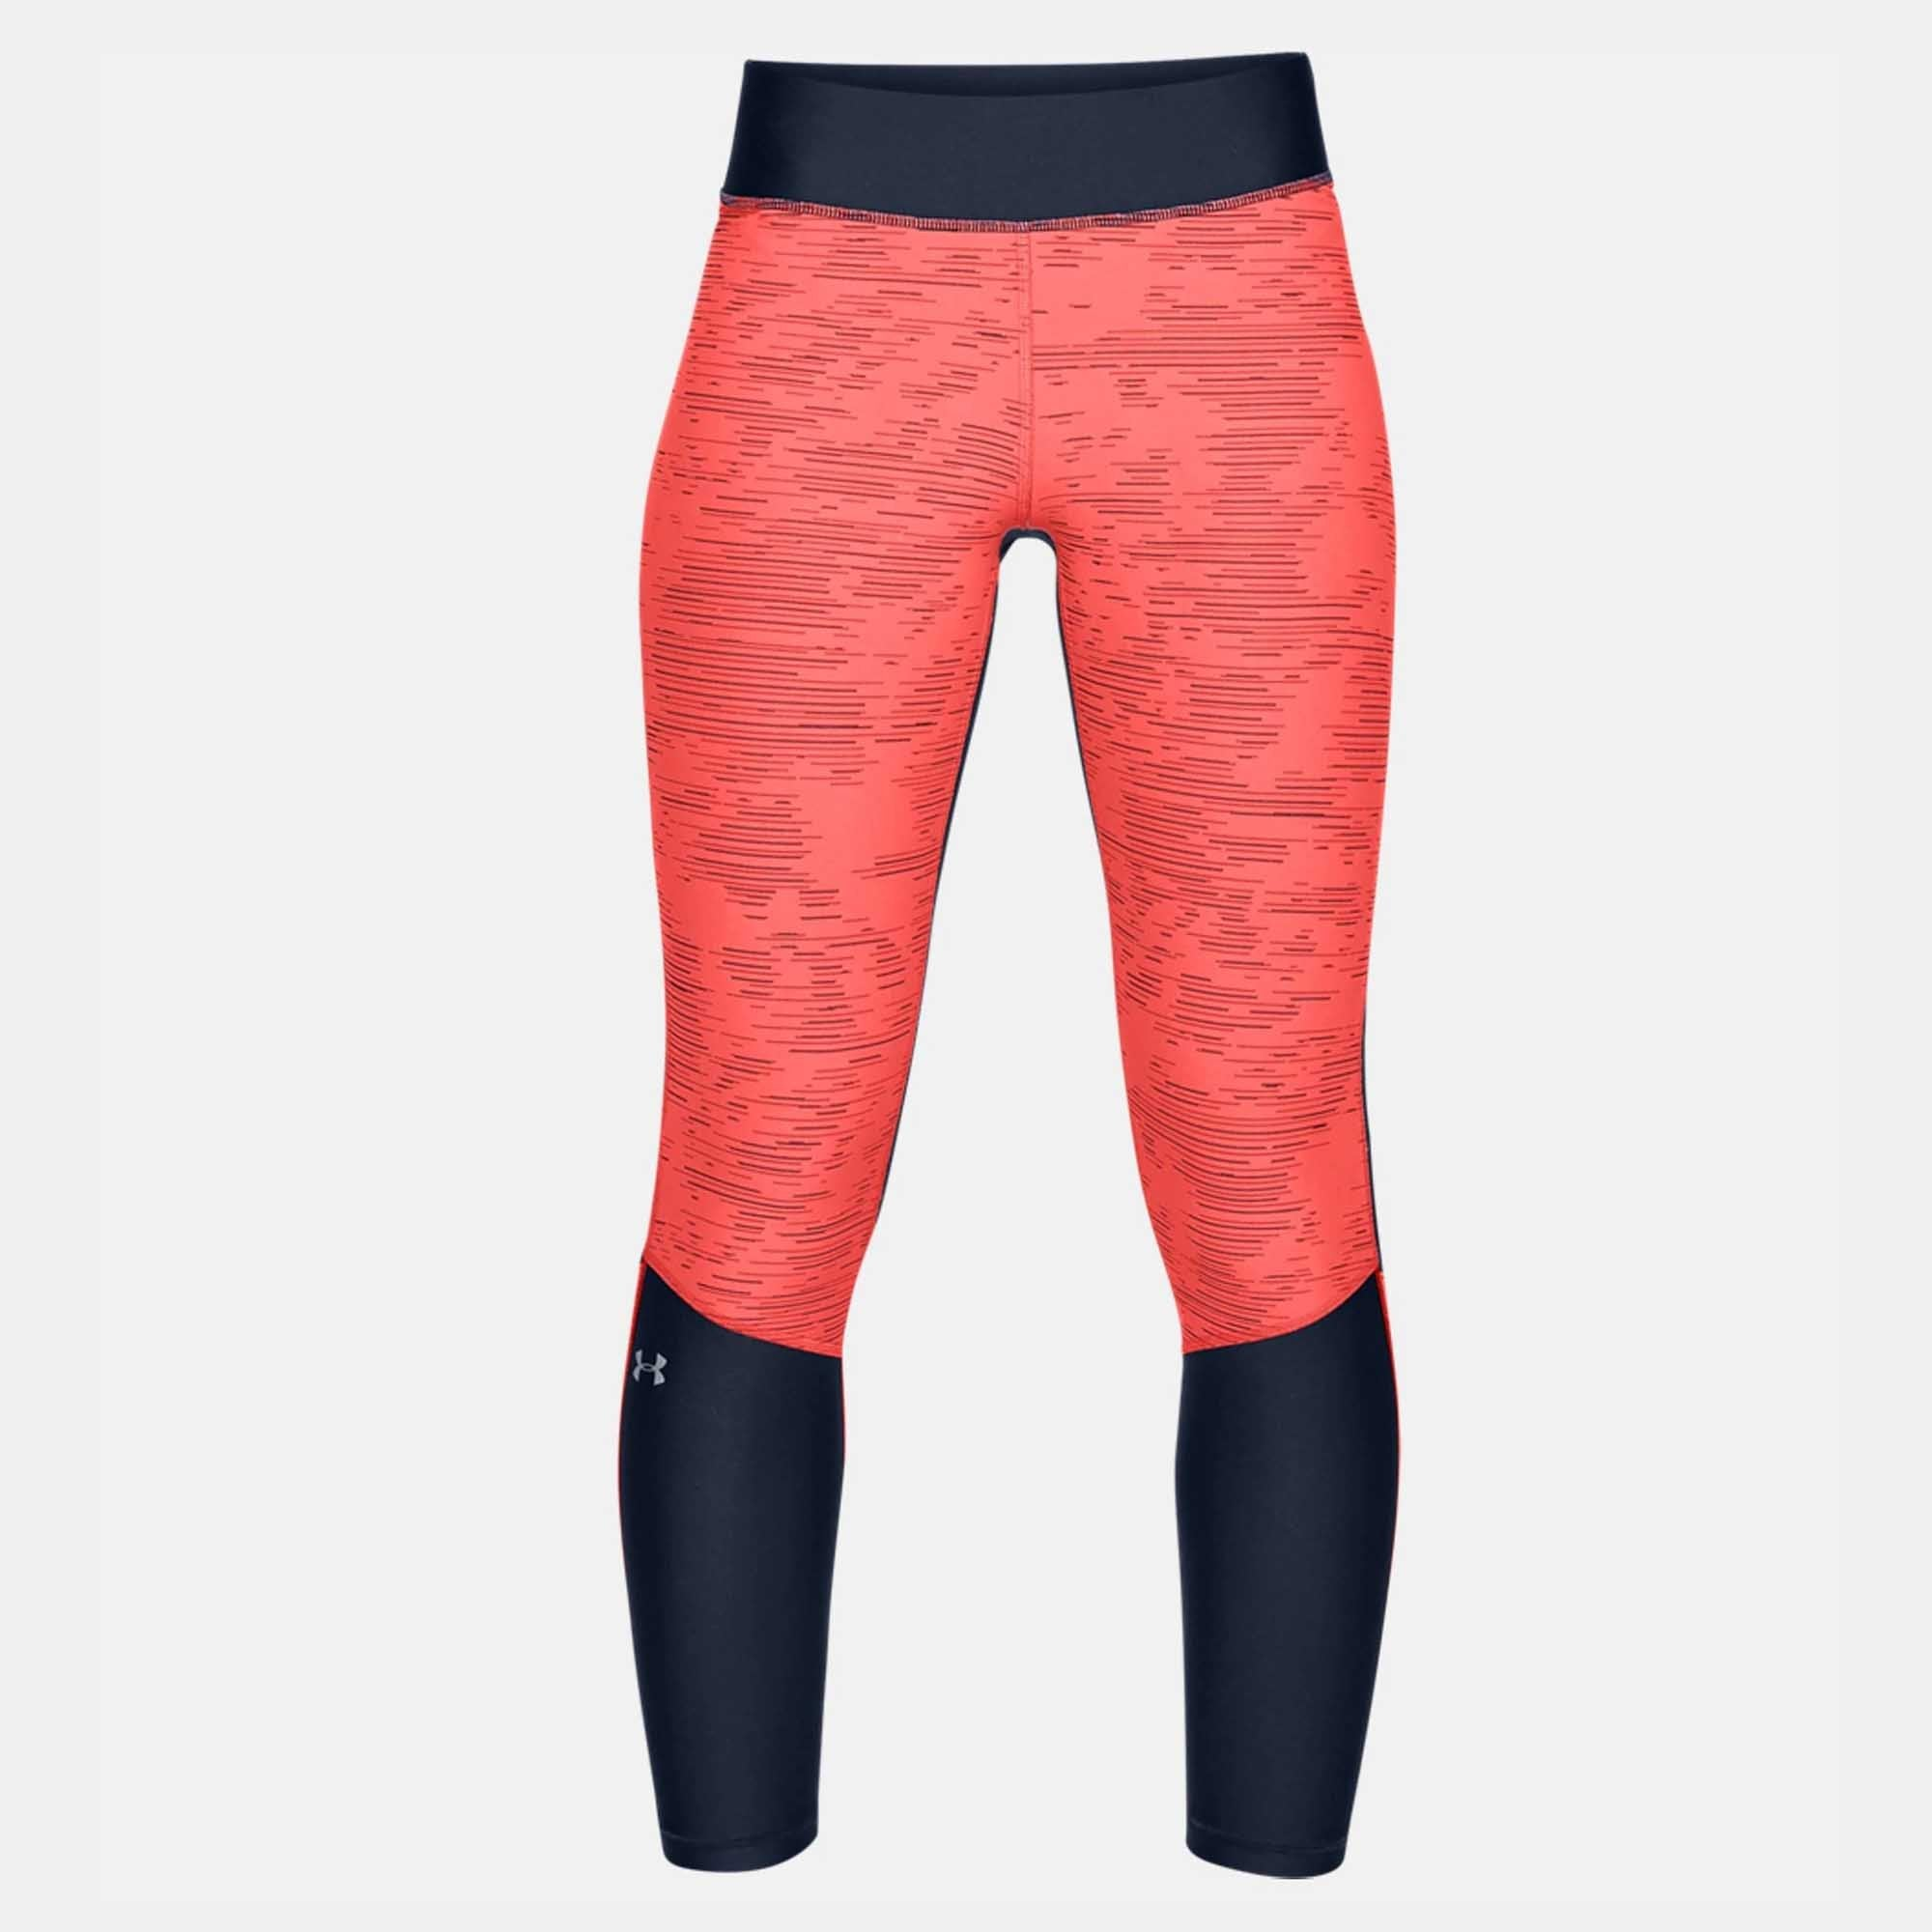 33b63e202b Buy Under Armour Women Heatgear Armour Jacquard Ankle Crop Leggings, Silver  Online in Singapore | Royal Sporting House